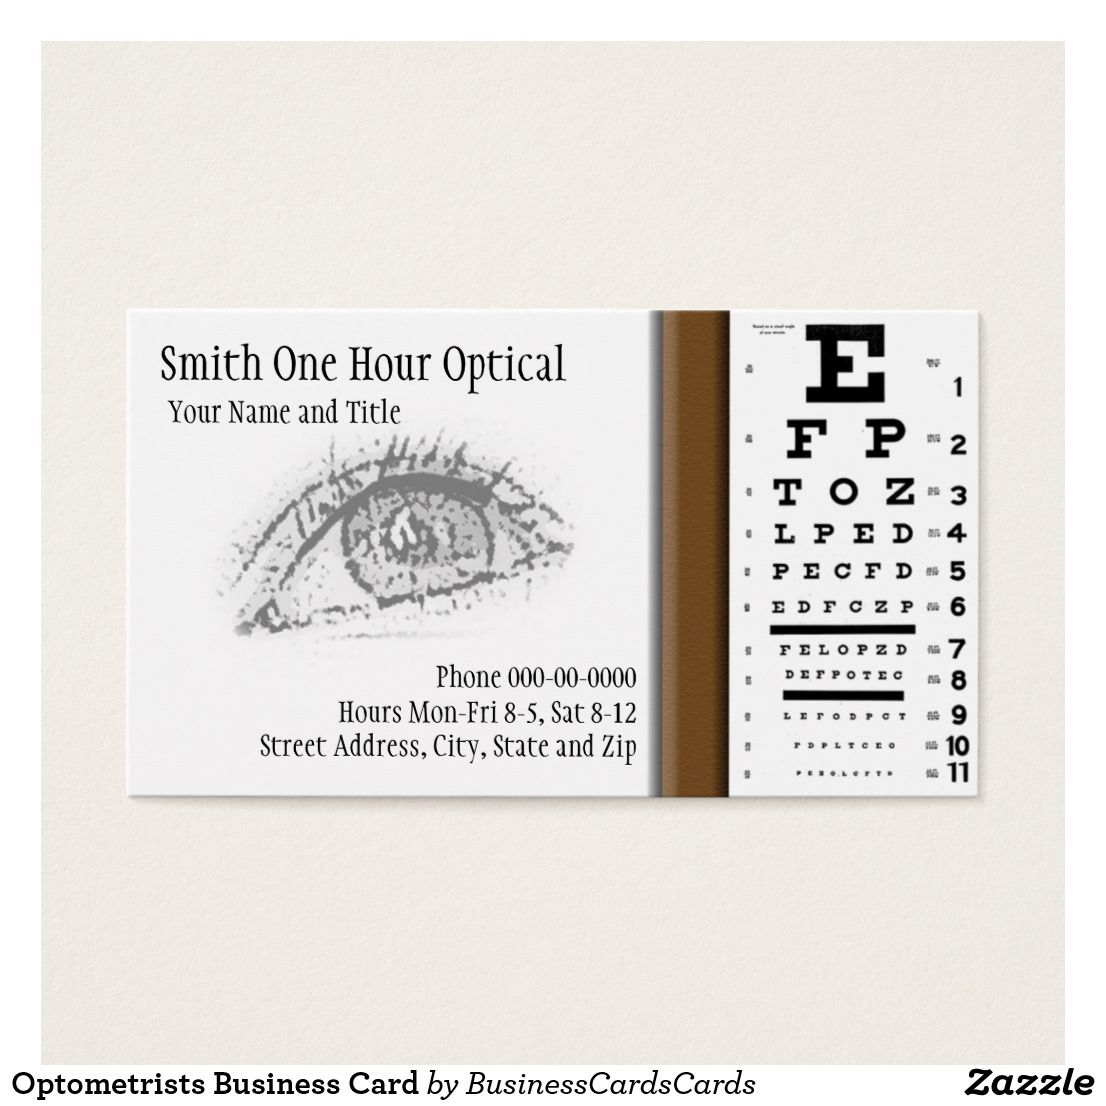 Charming optometry business cards gallery business card ideas optometrists business card business cards and business colourmoves Images